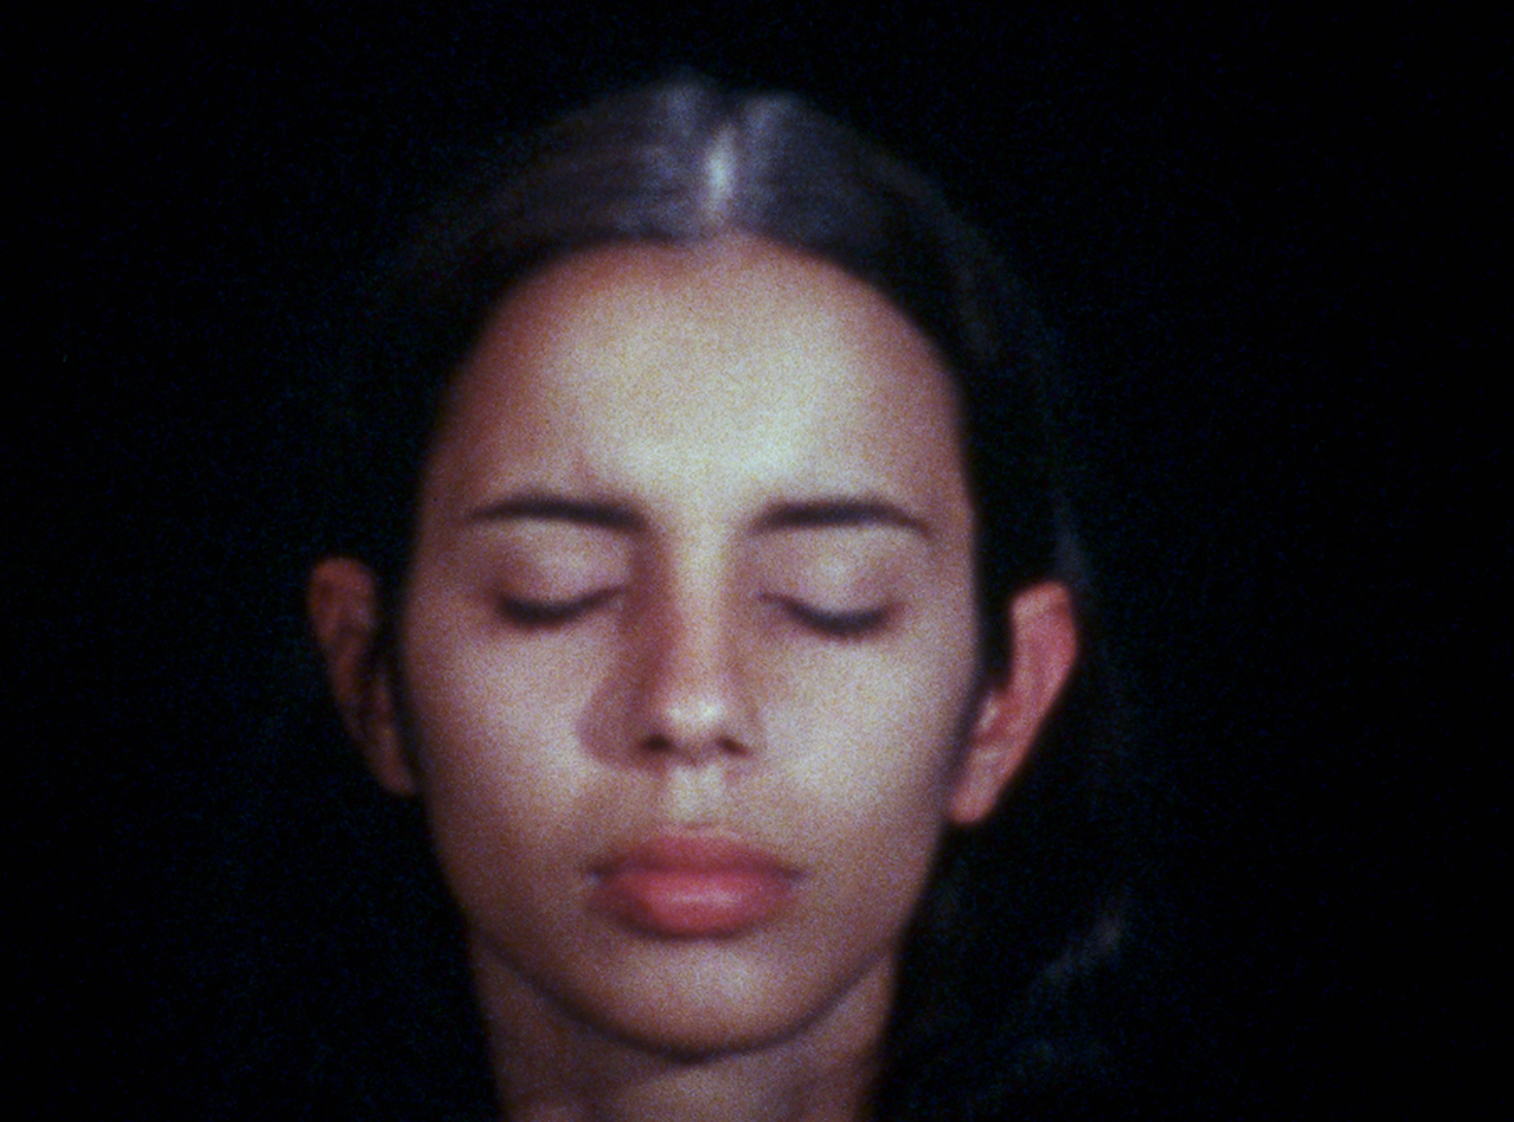 Sweating Blood 1973 Ana Mendieta Film super-8. © The Estate of Ana Mendieta Collection, LLC. Courtesy Galerie Lelong & Co.